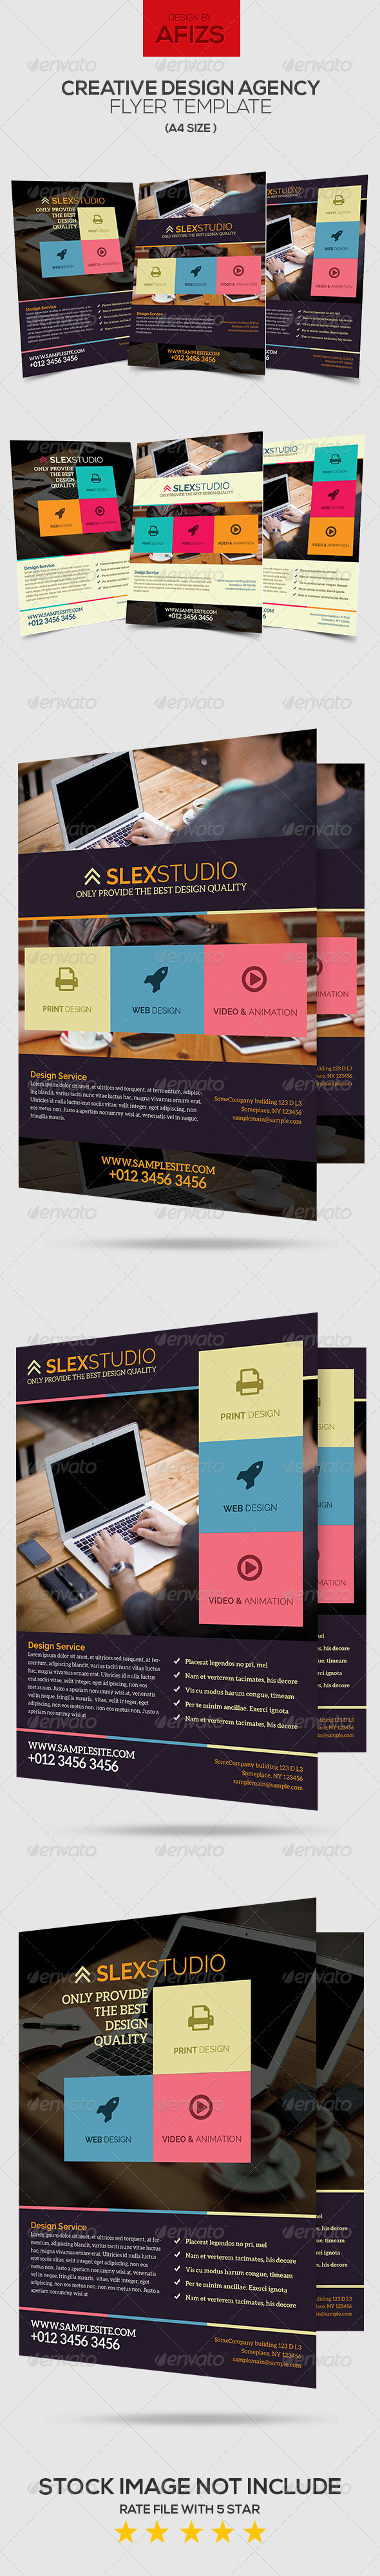 GraphicRiver Creative Design Agency Flyer 6331925